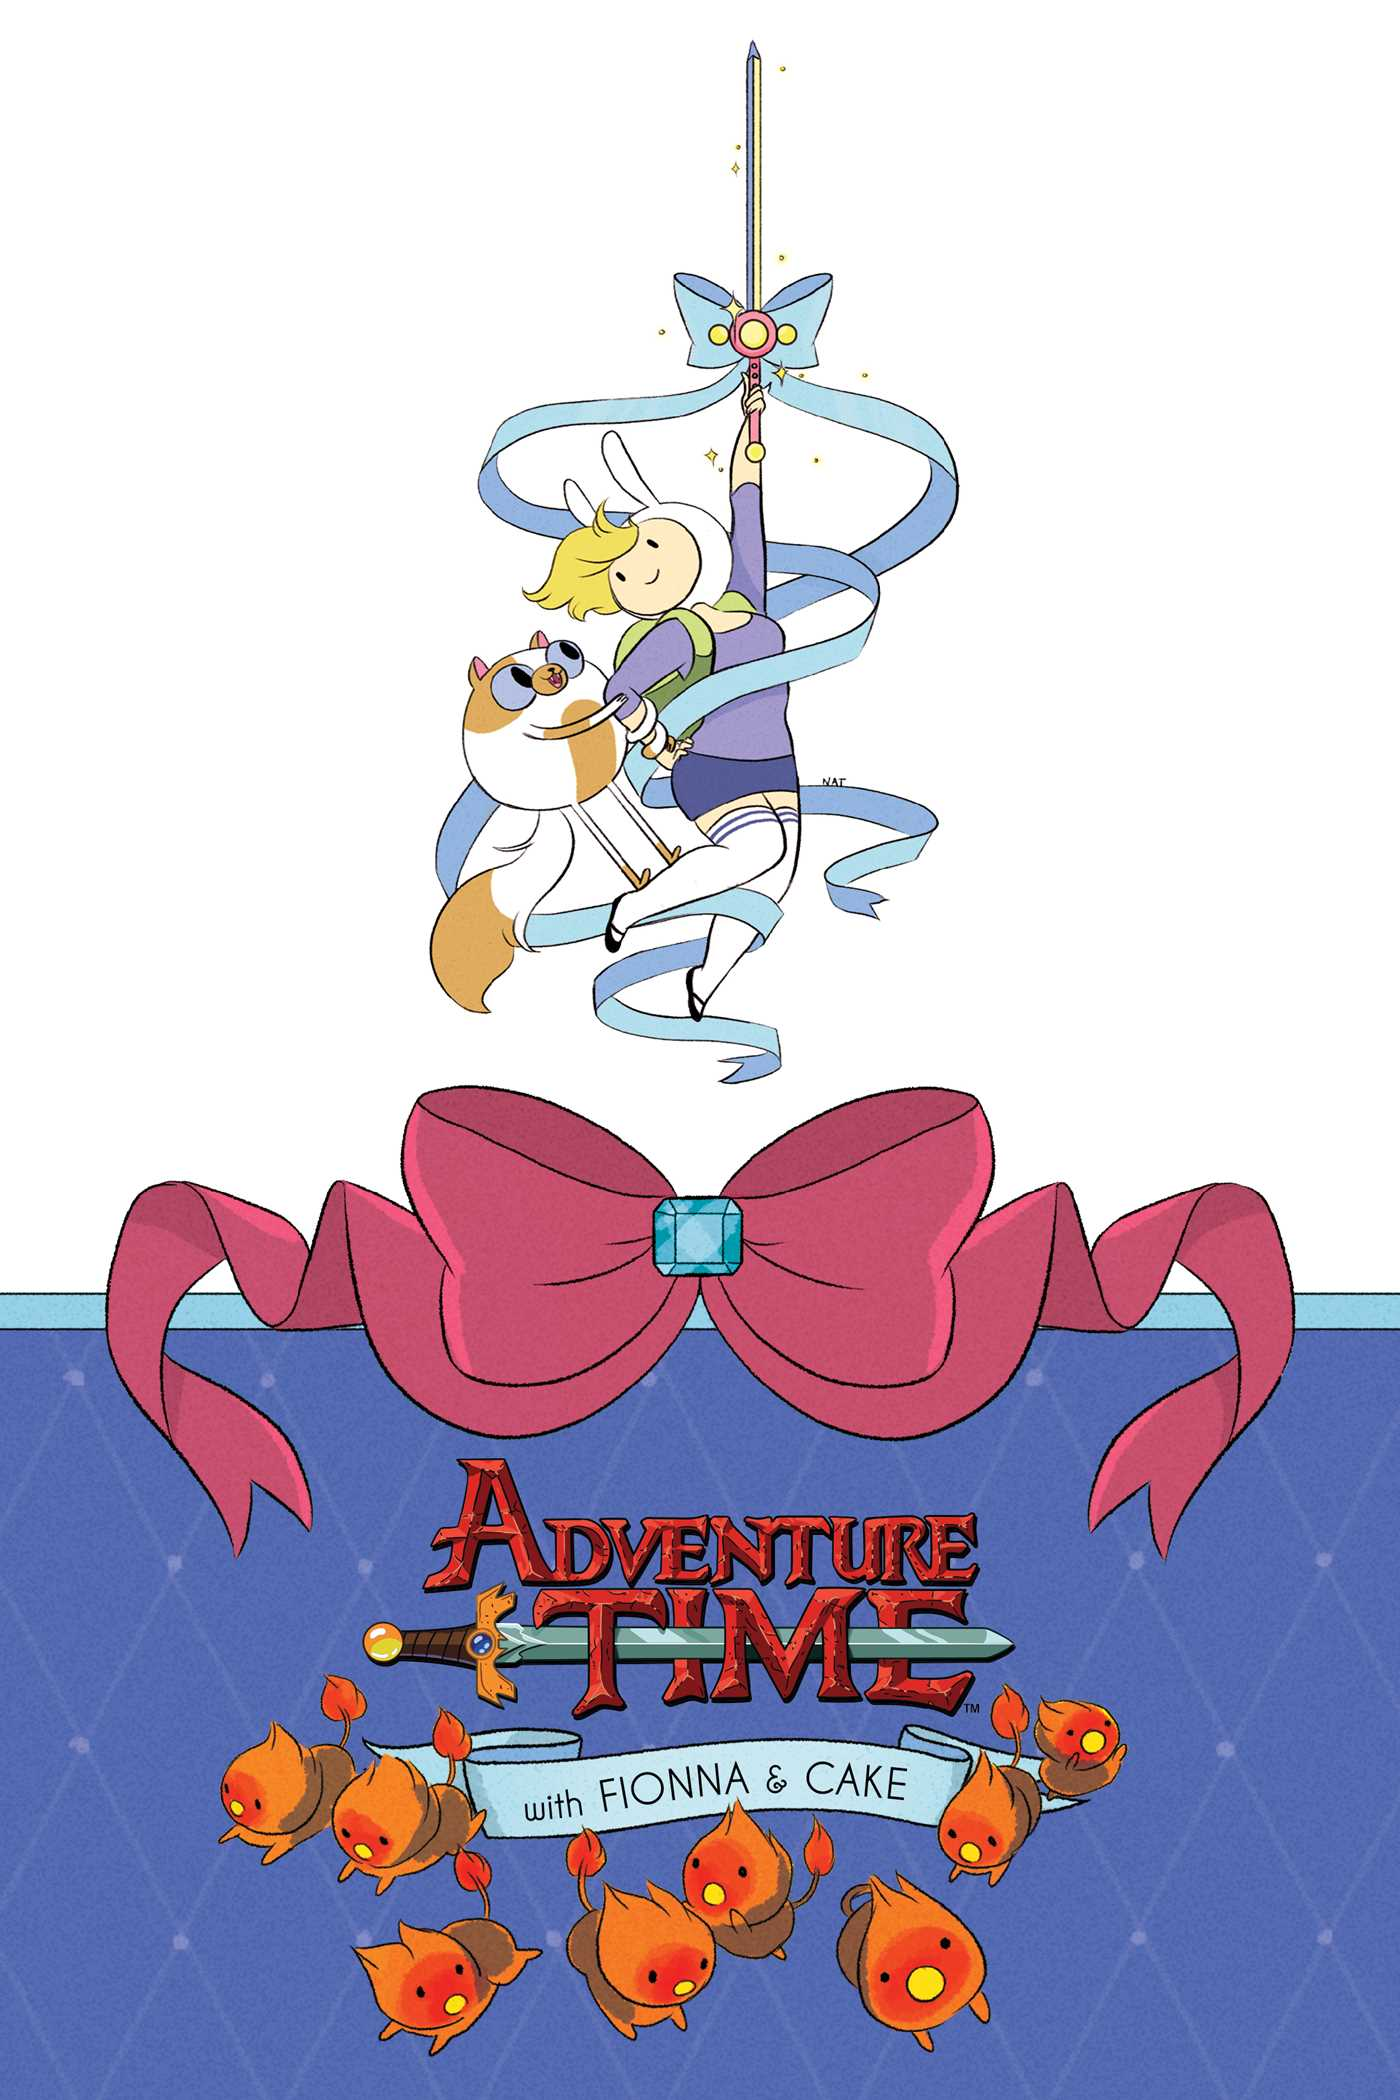 Adventure-time-fionna-and-cake-mathematical-9781608863914_hr